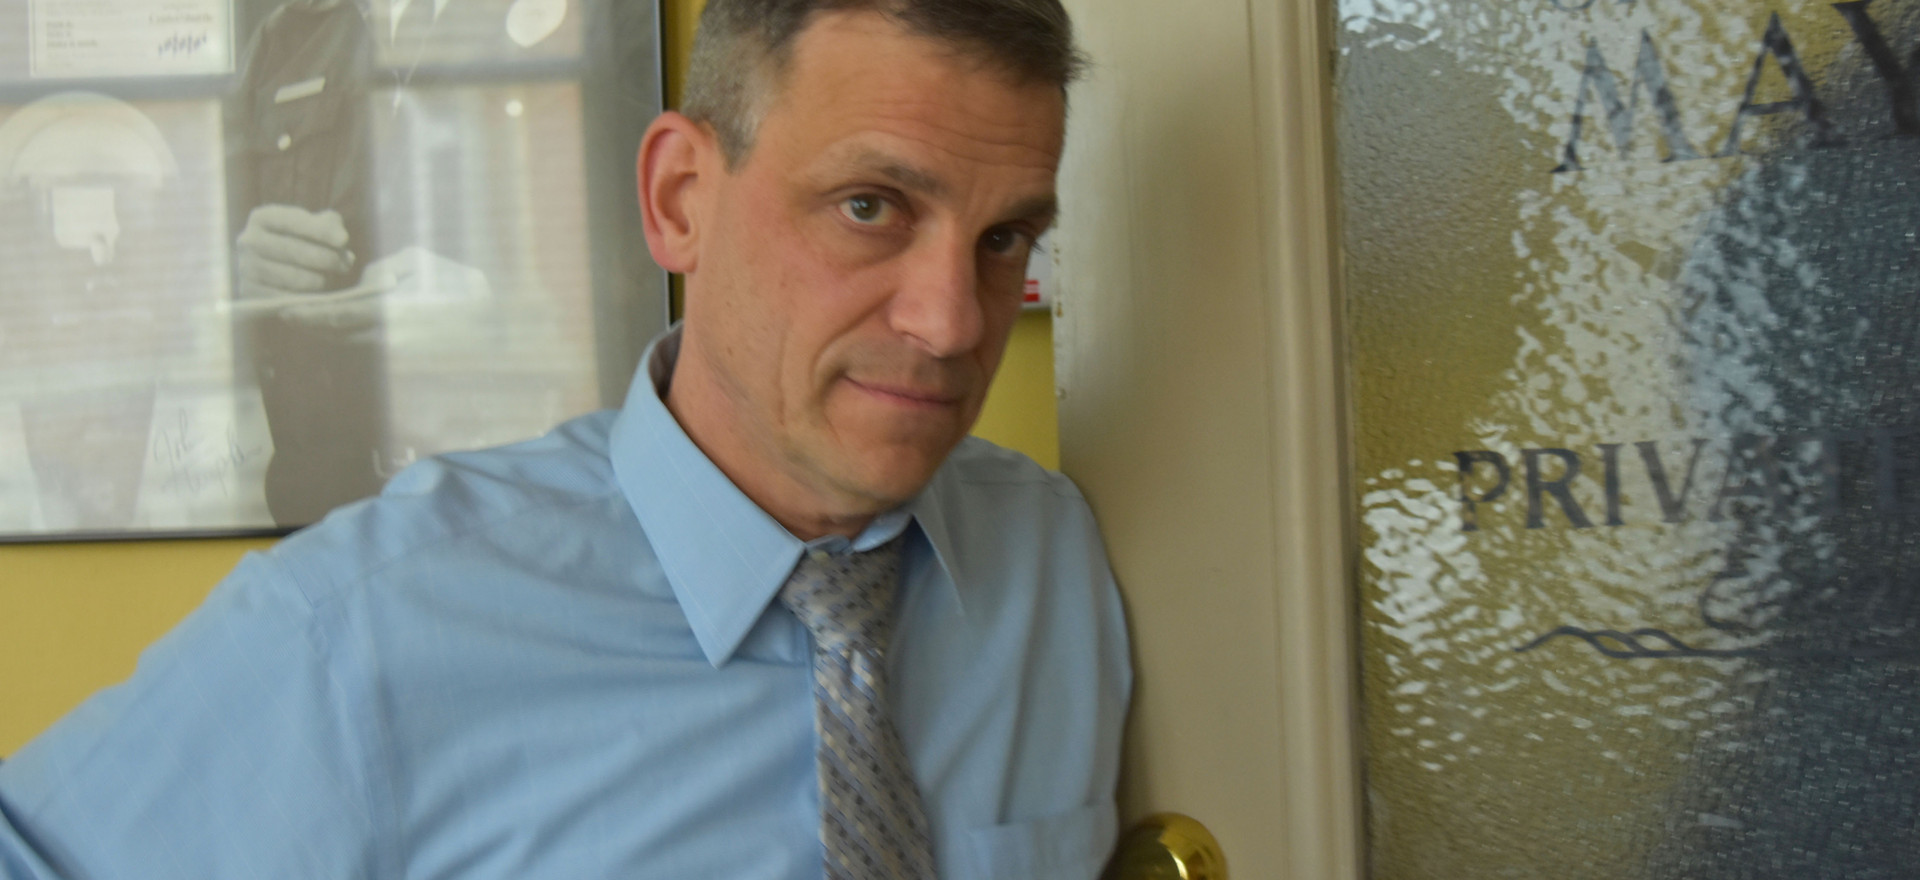 Christopher Louras, Rutland, Vermont former mayor, worries about refugee situation